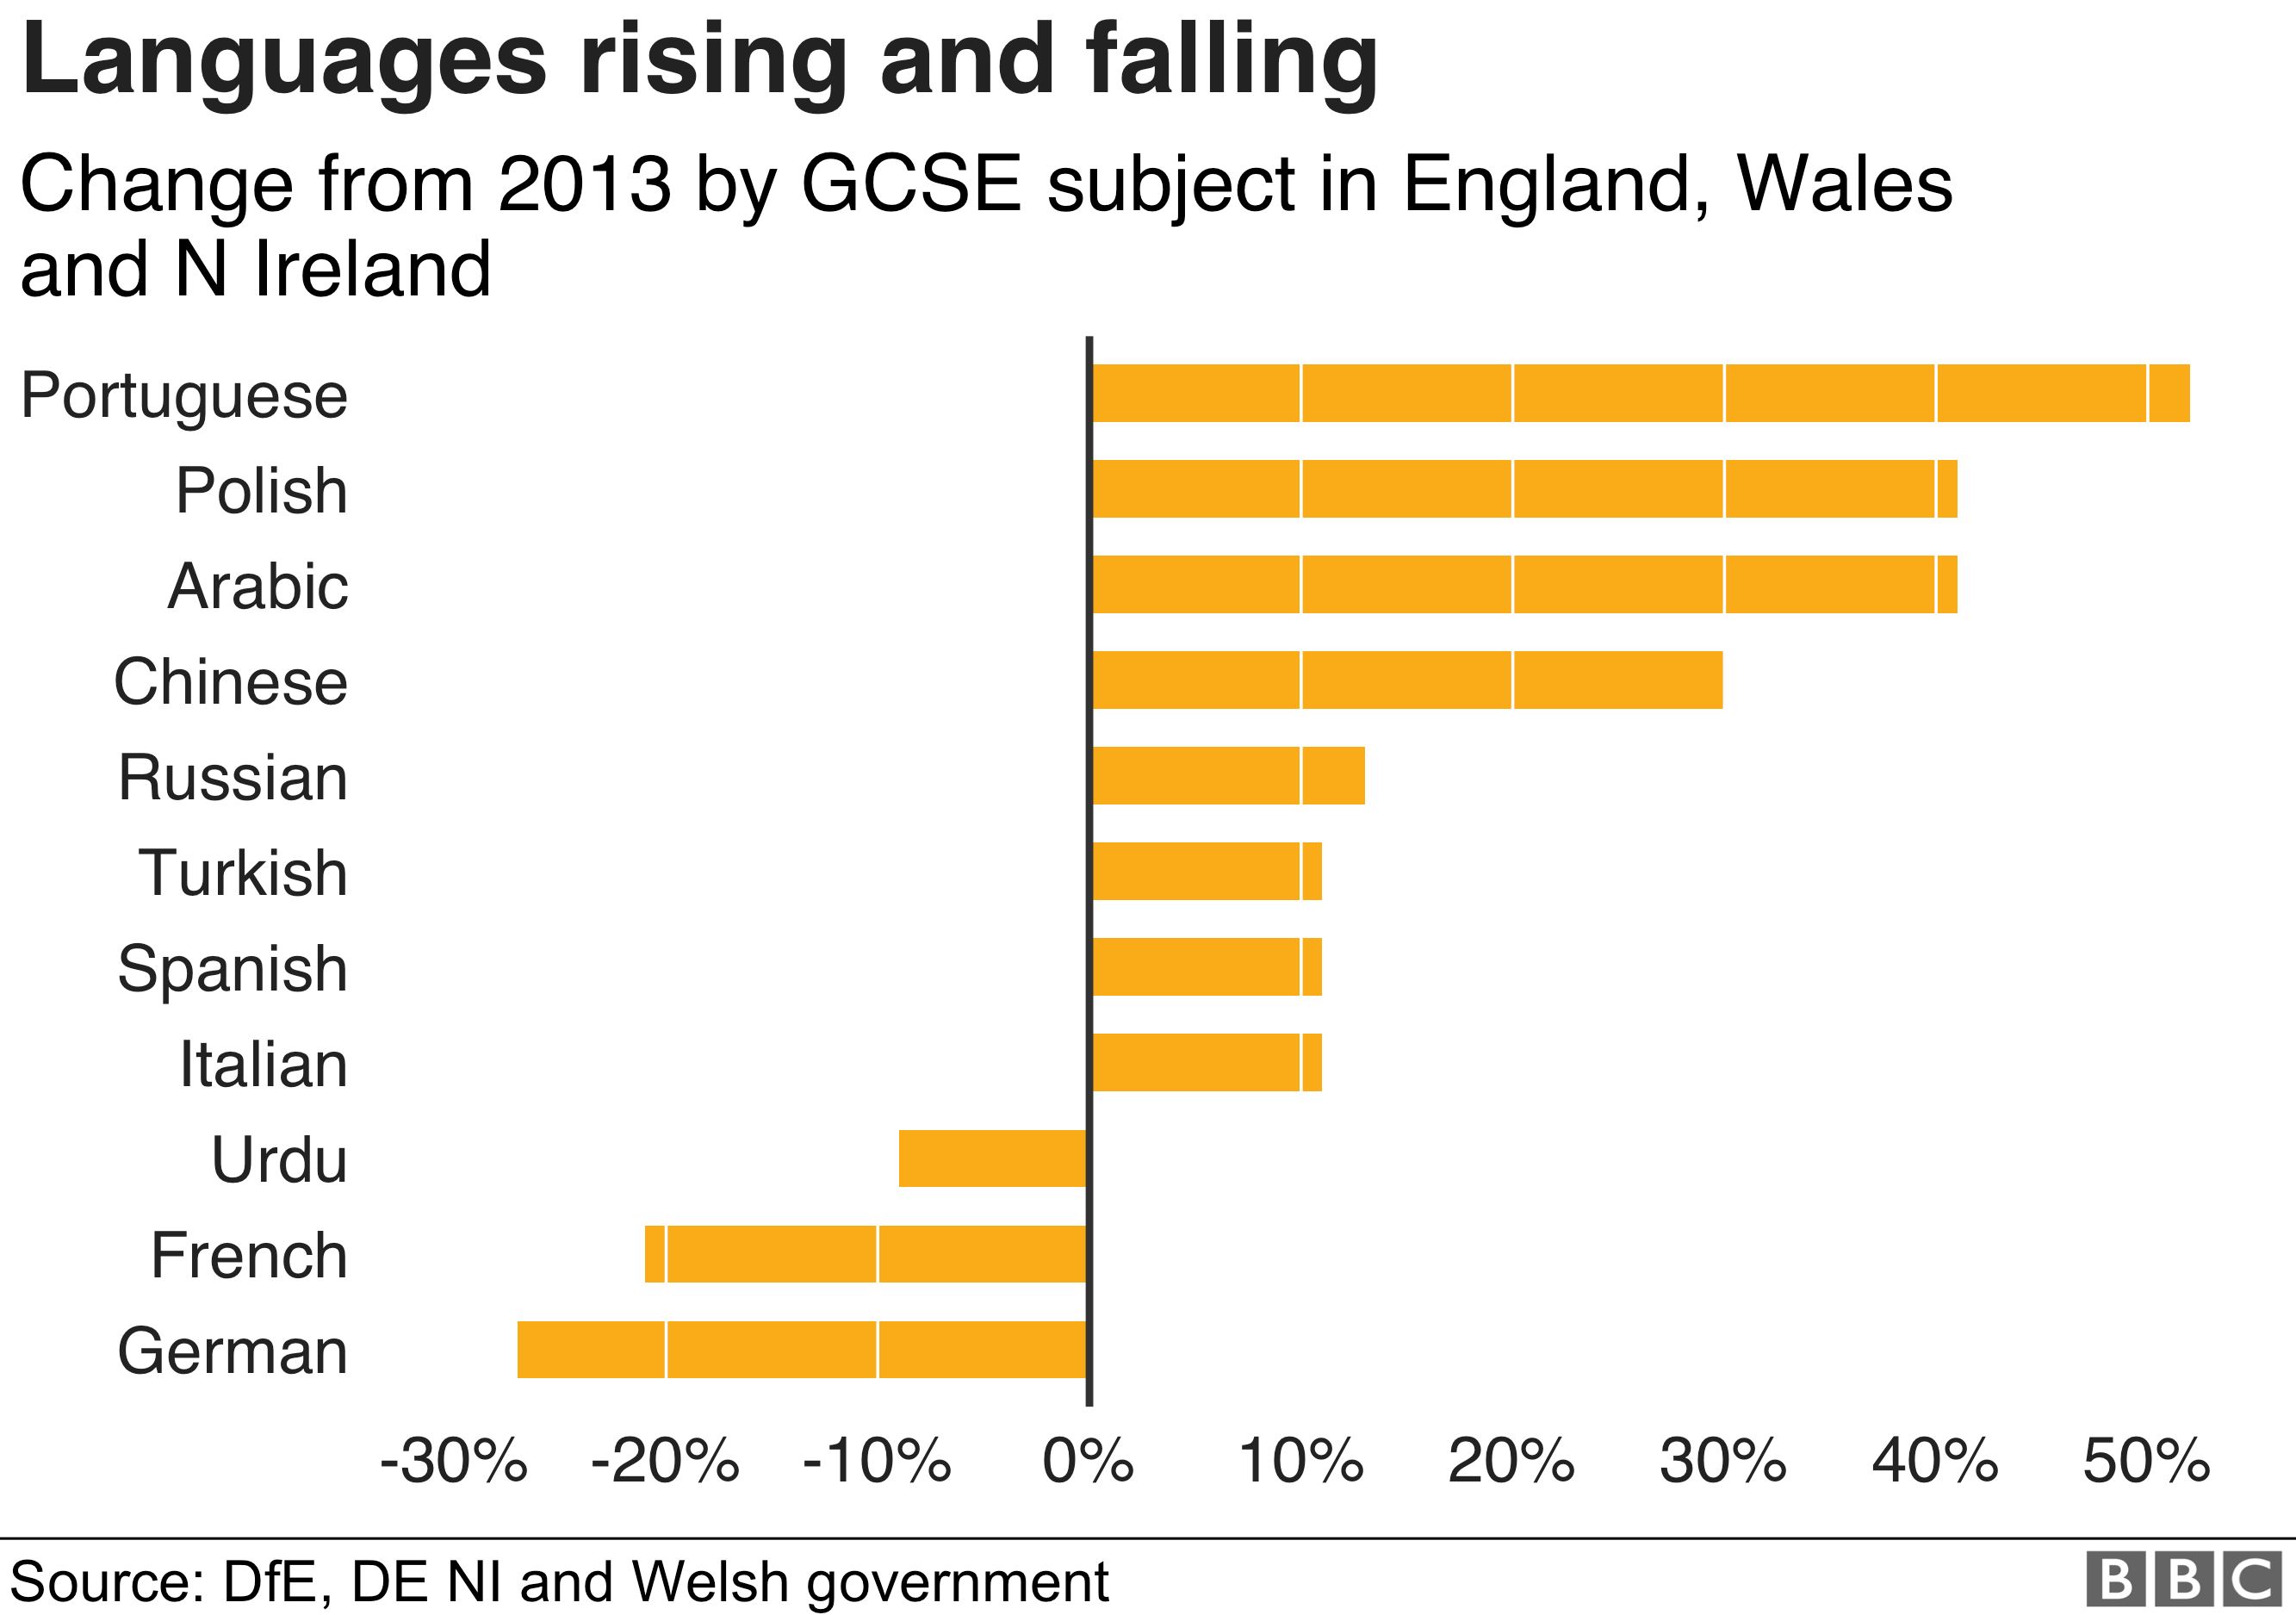 Chart showing the languages rising and falling at GCSE level in England, Wales and Northern Ireland, with Portuguese, Polish and Arabic top and French and German at the bottom